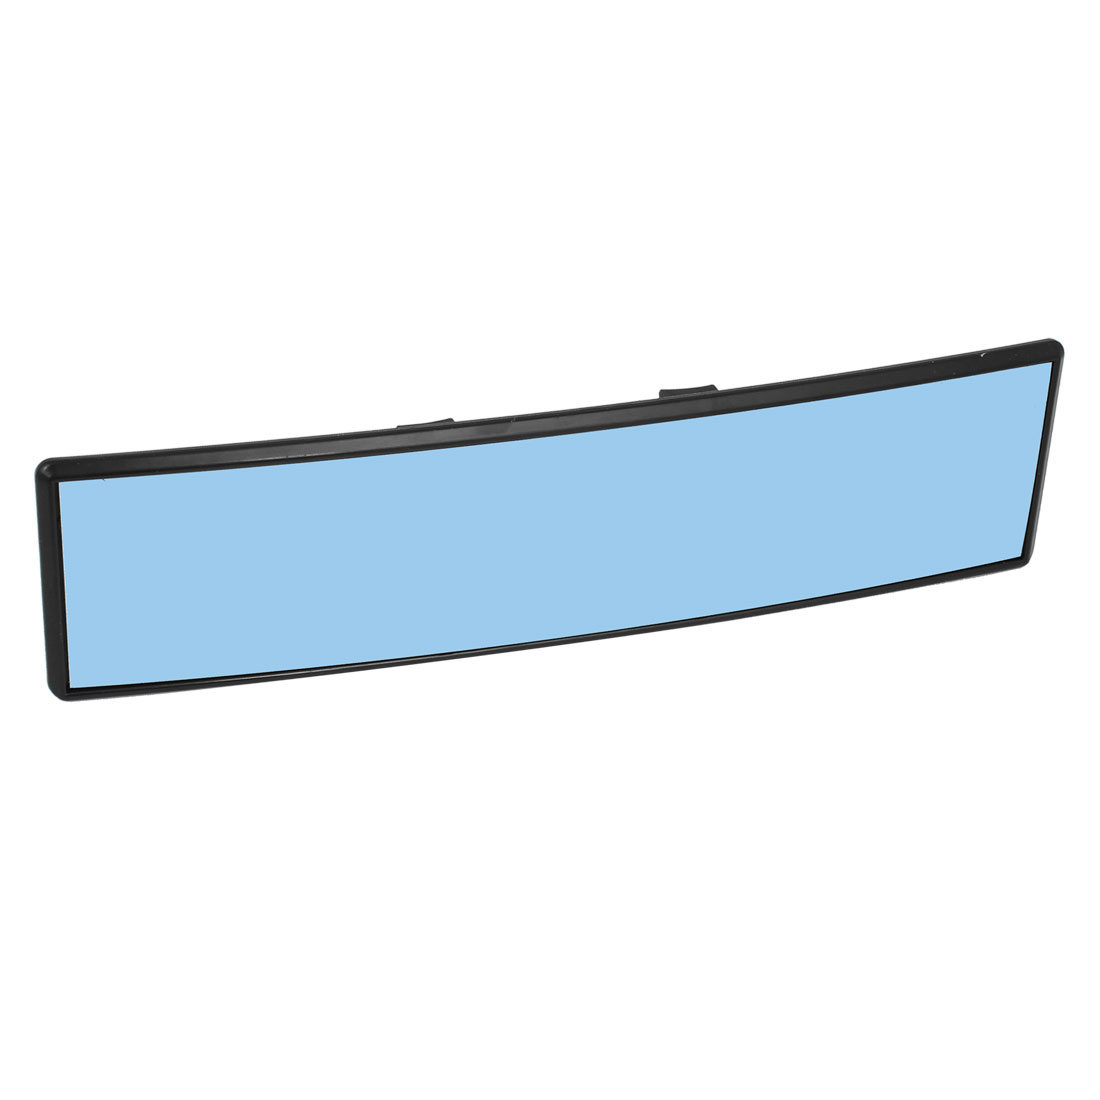 Universal Blue Tinted 300mm Wide Convex Clip On Rear View Mirror for Car Truck SUV